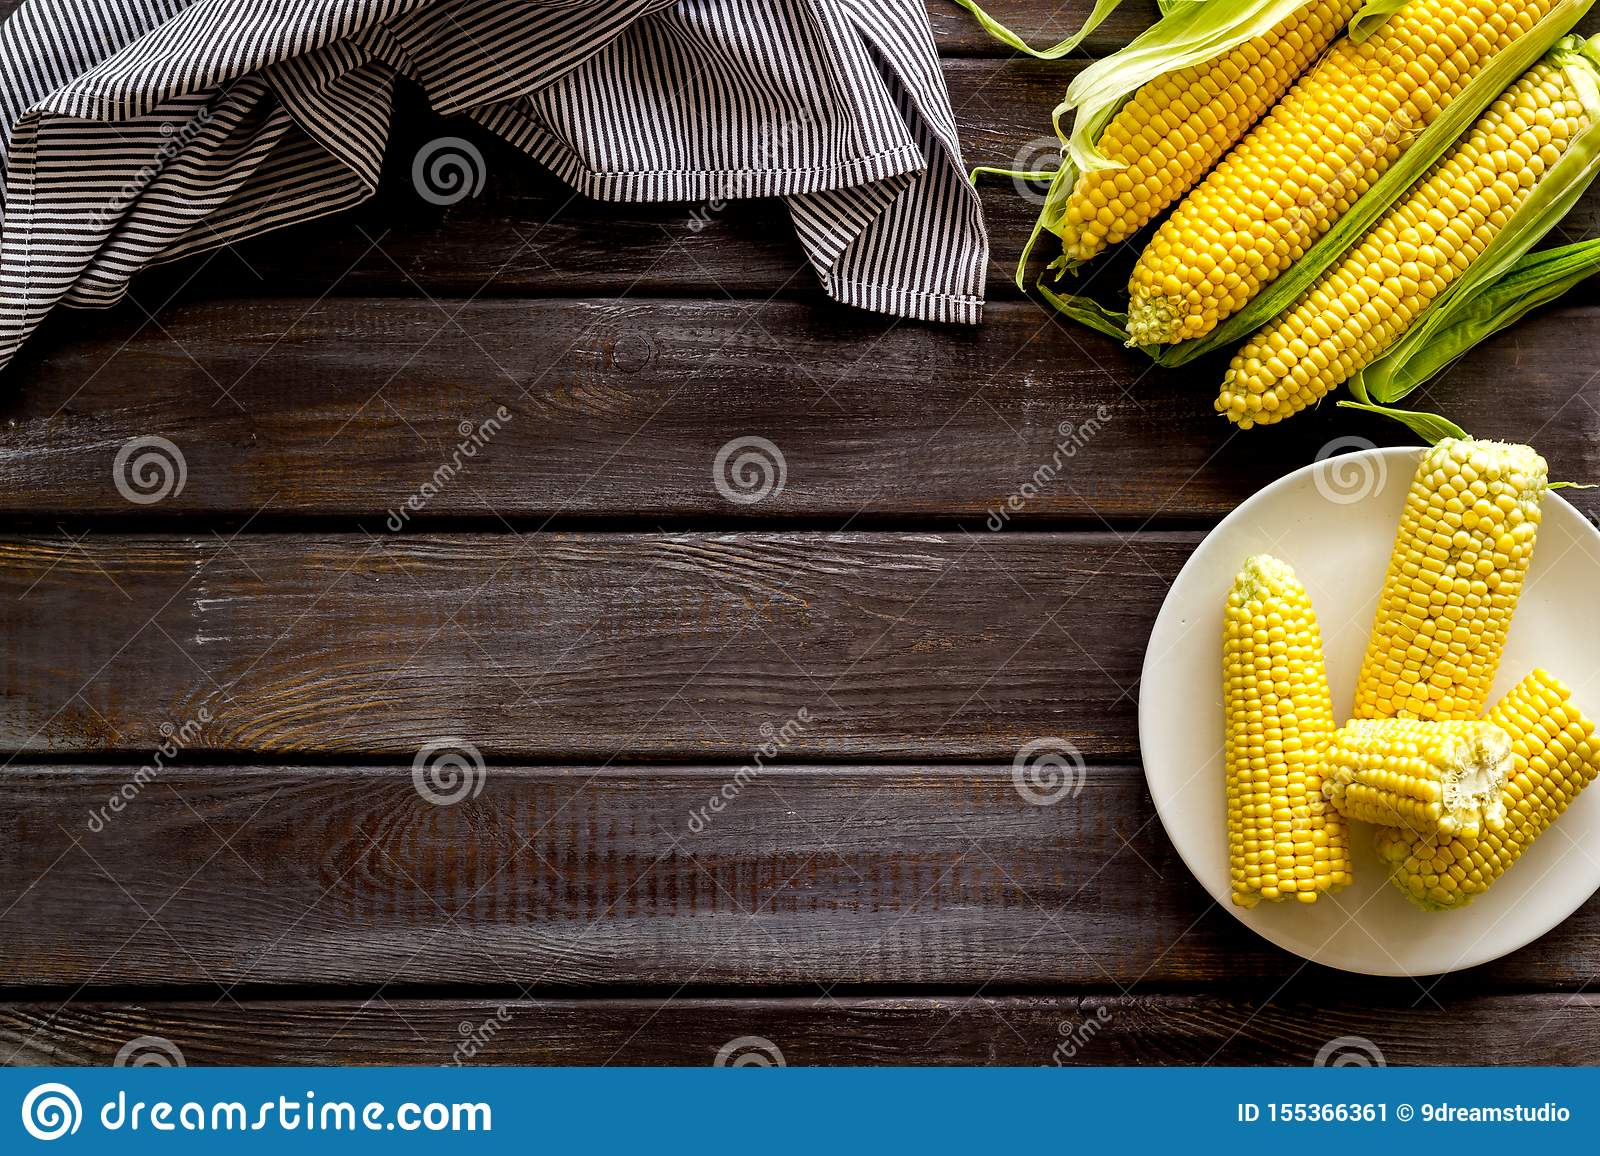 Fresh corn on plate as farm food on wooden background top view space for text